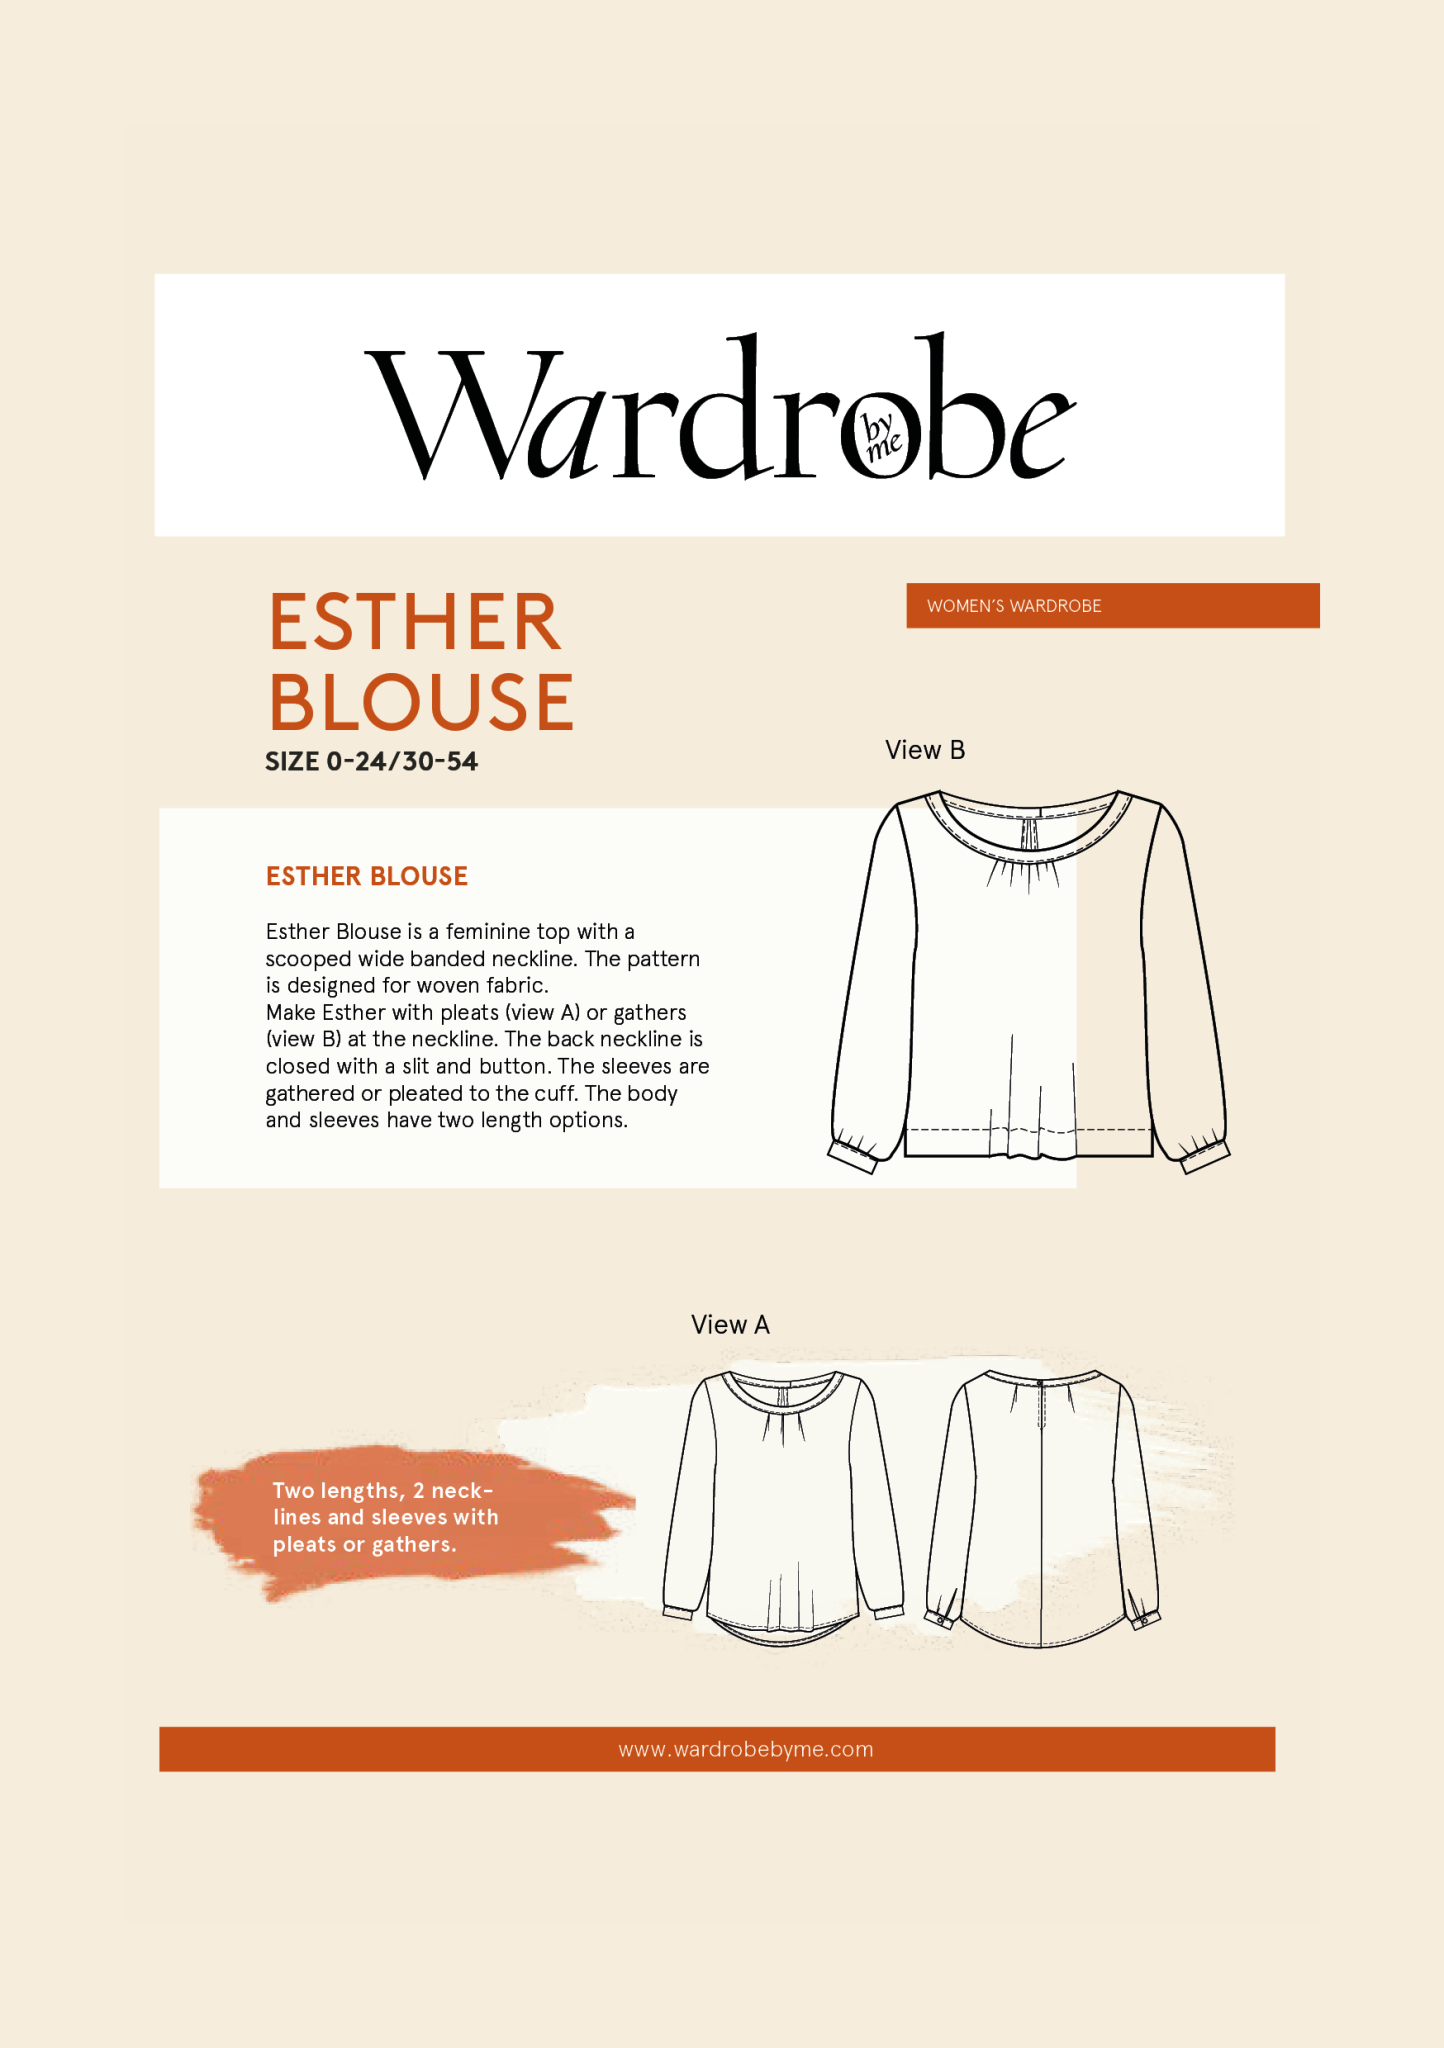 Wardrobe by Me Esther Blouse Pattern 0-24 (30-54)